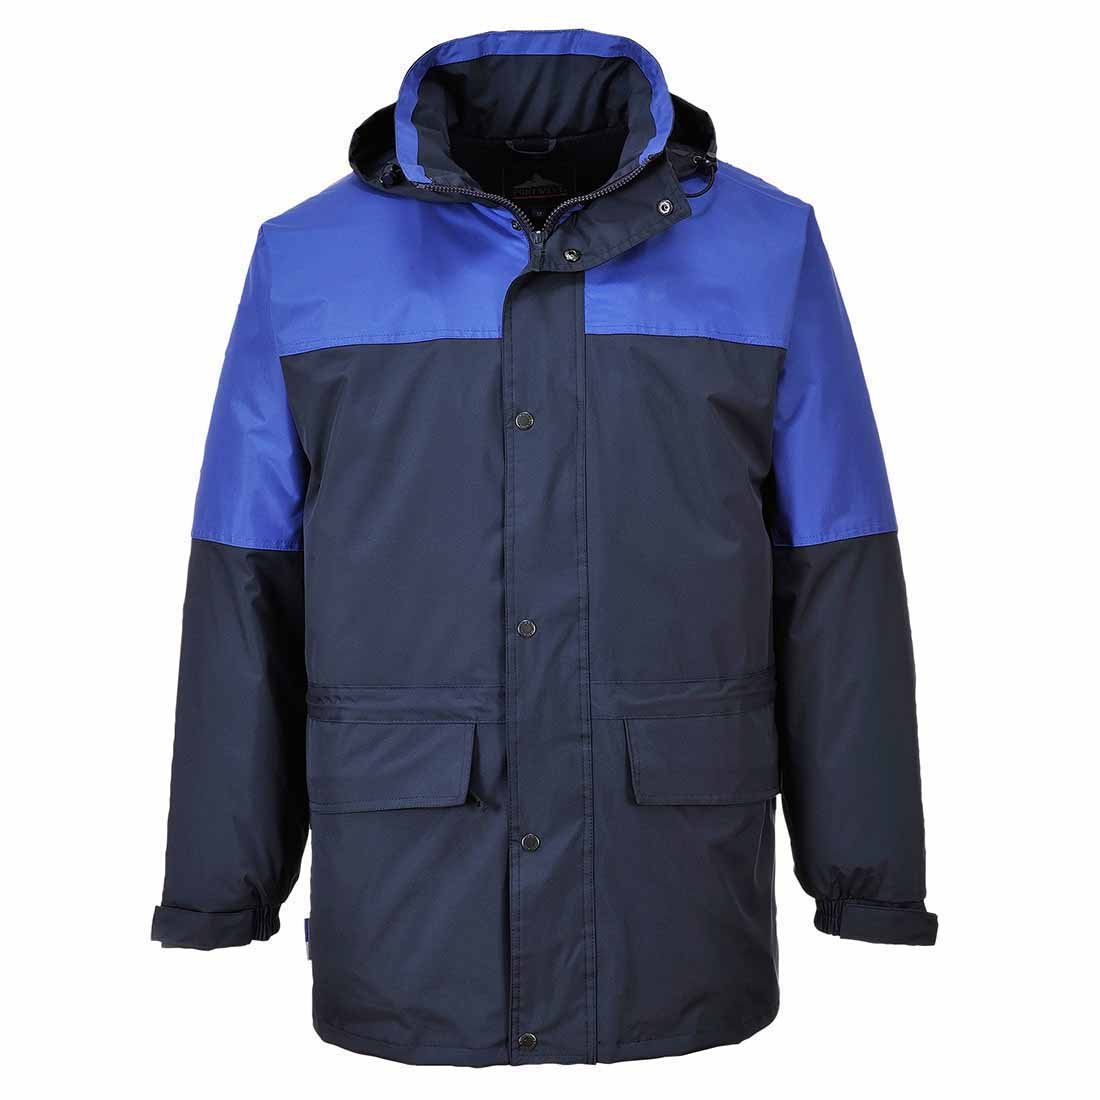 Blu Navy Portwest S523NARXS Giacca Oban Impermeabile Foderata in Pile XS